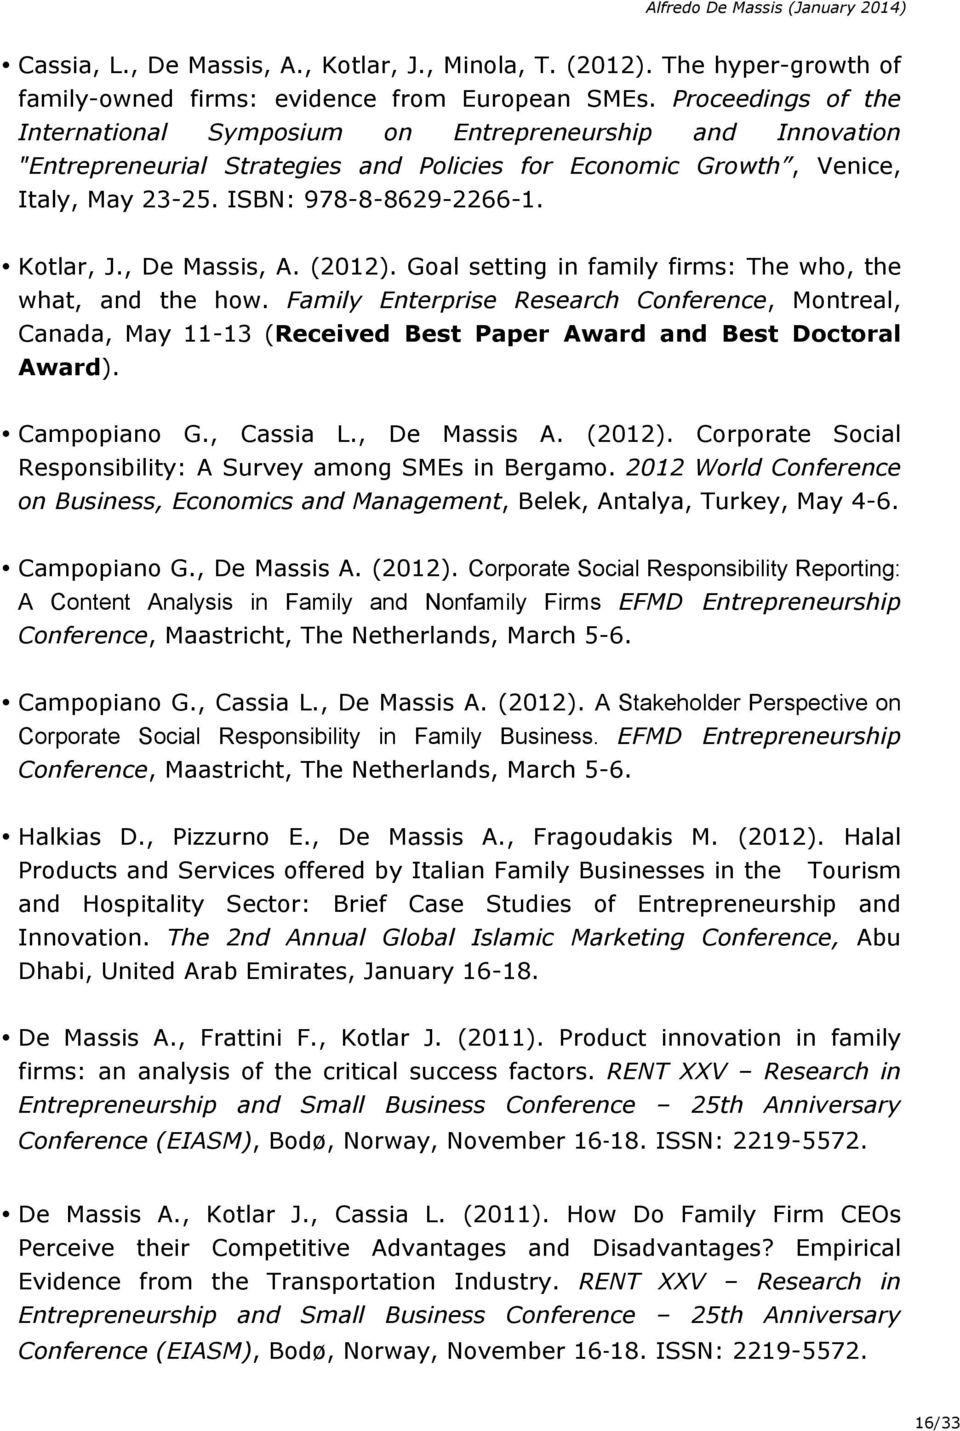 Kotlar, J., De Massis, A. (2012). Goal setting in family firms: The who, the what, and the how.